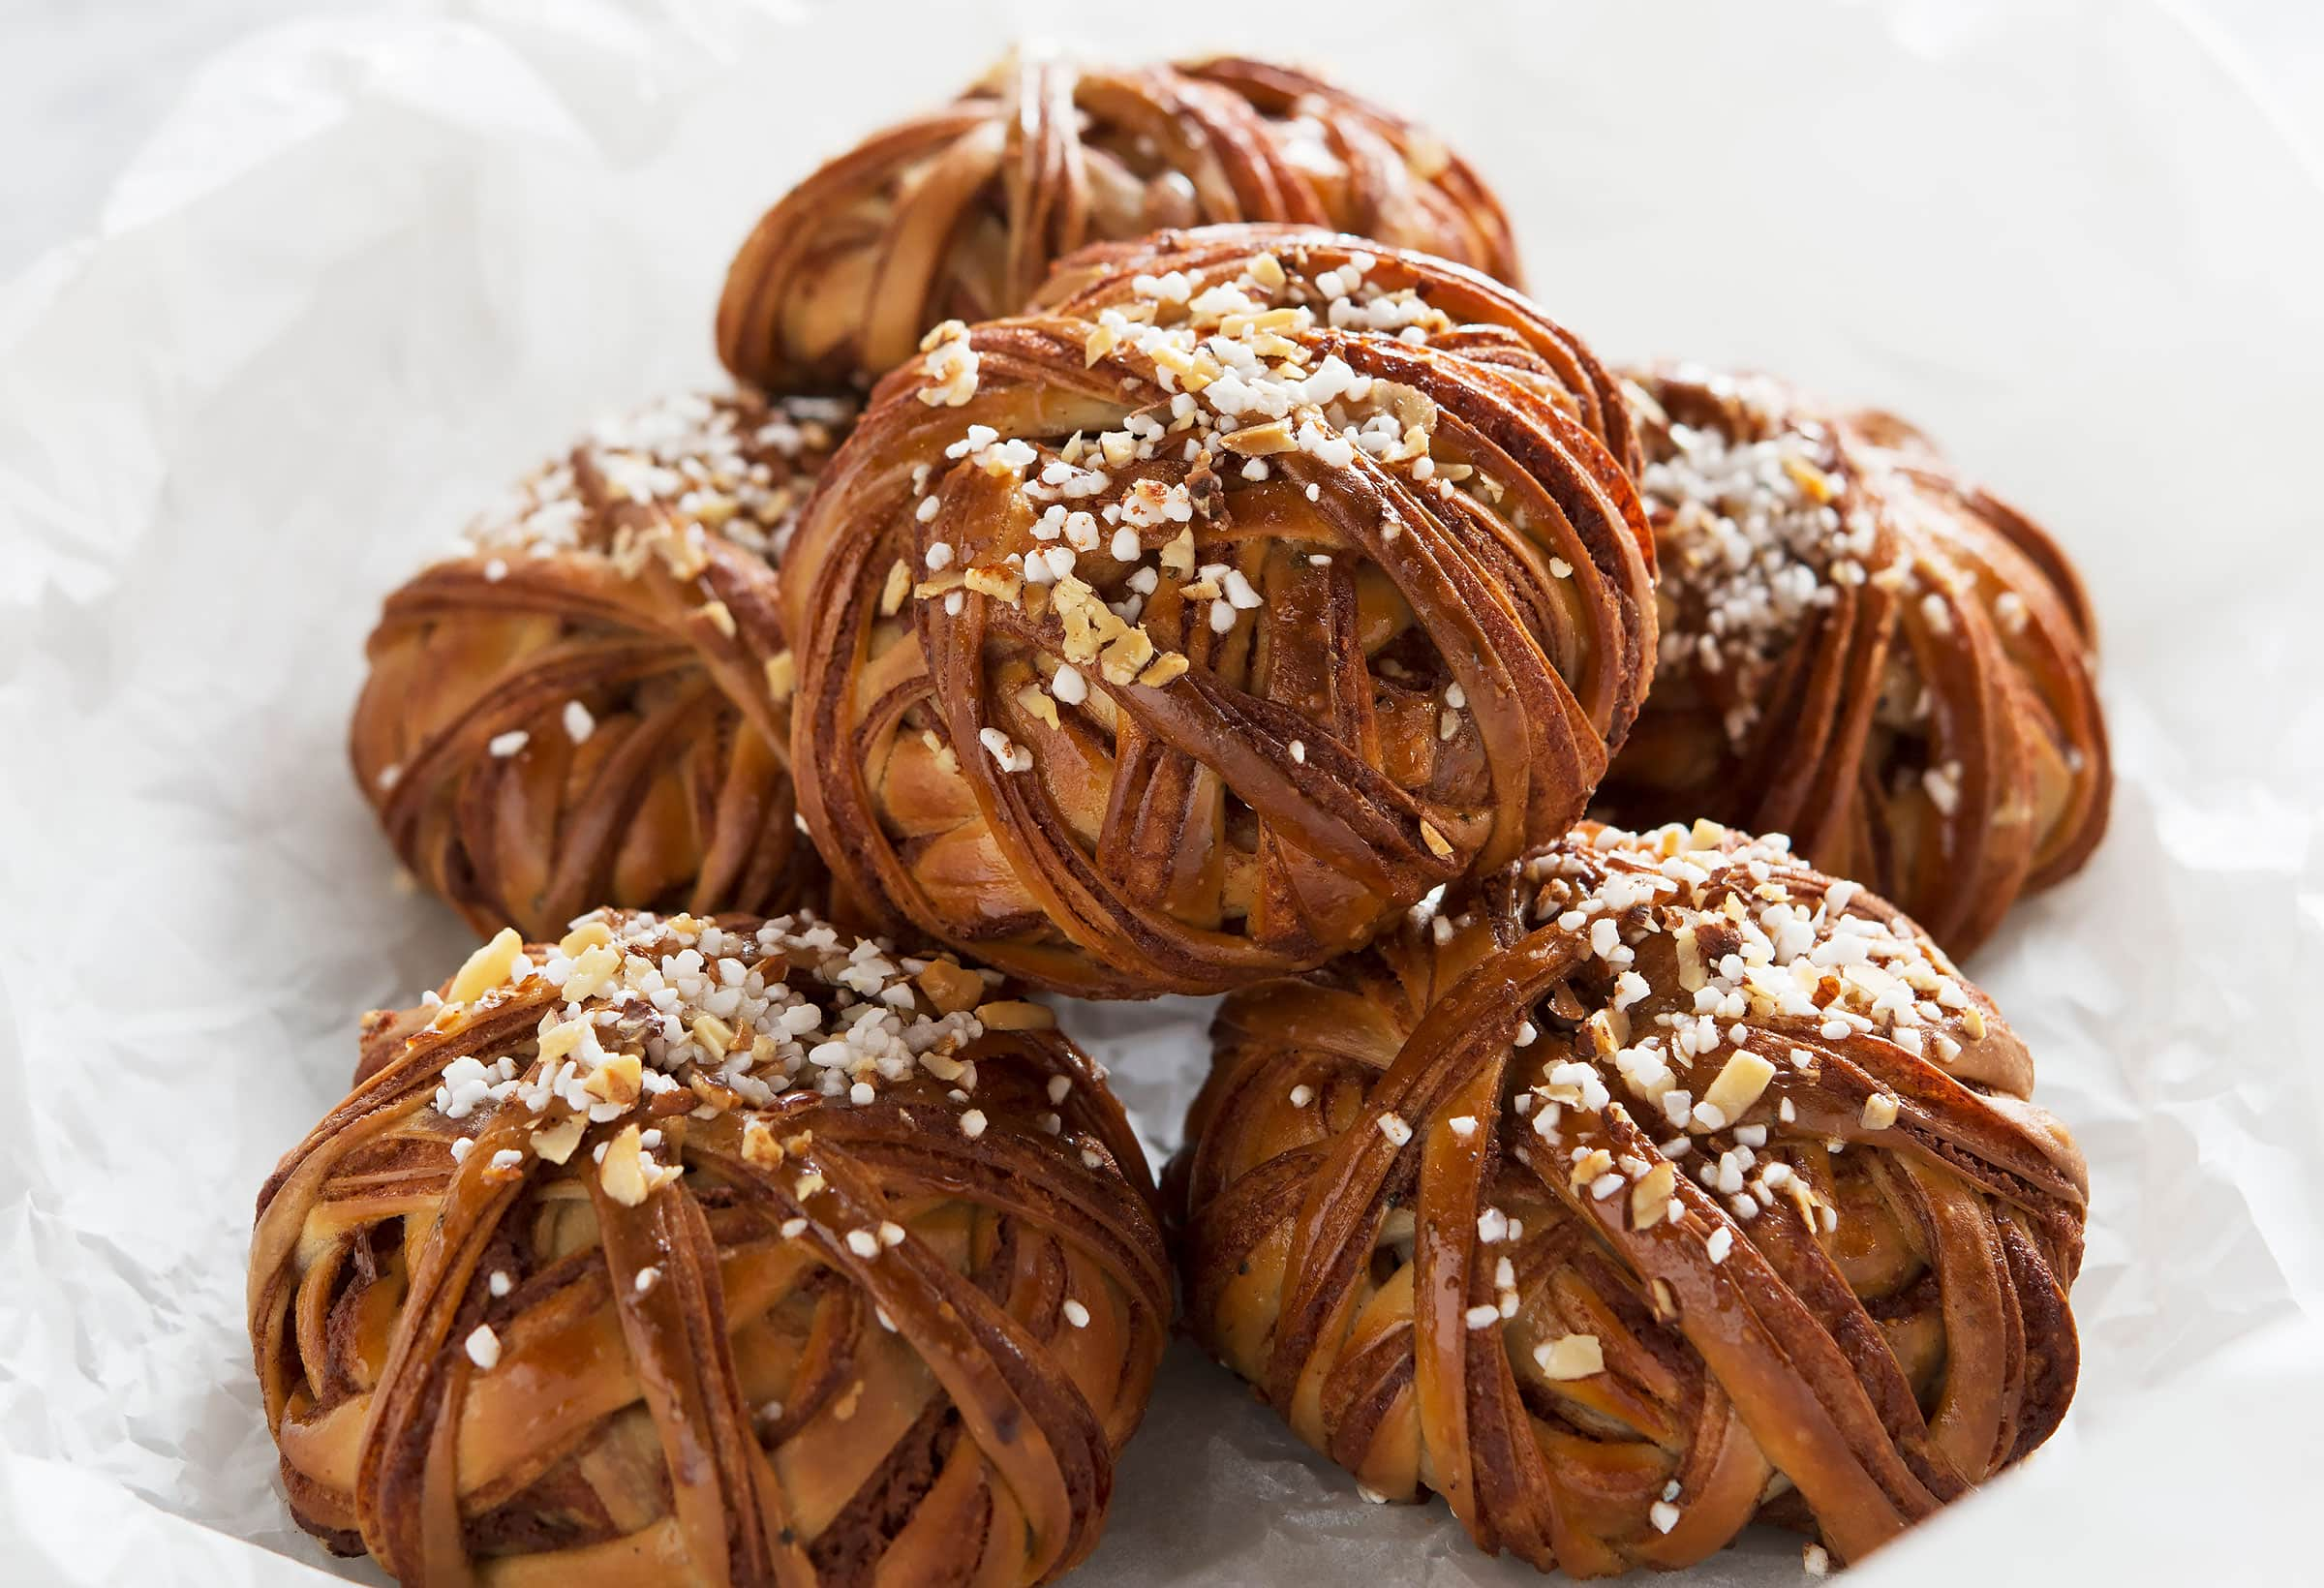 Where to find Stockholm's best cinnamon buns